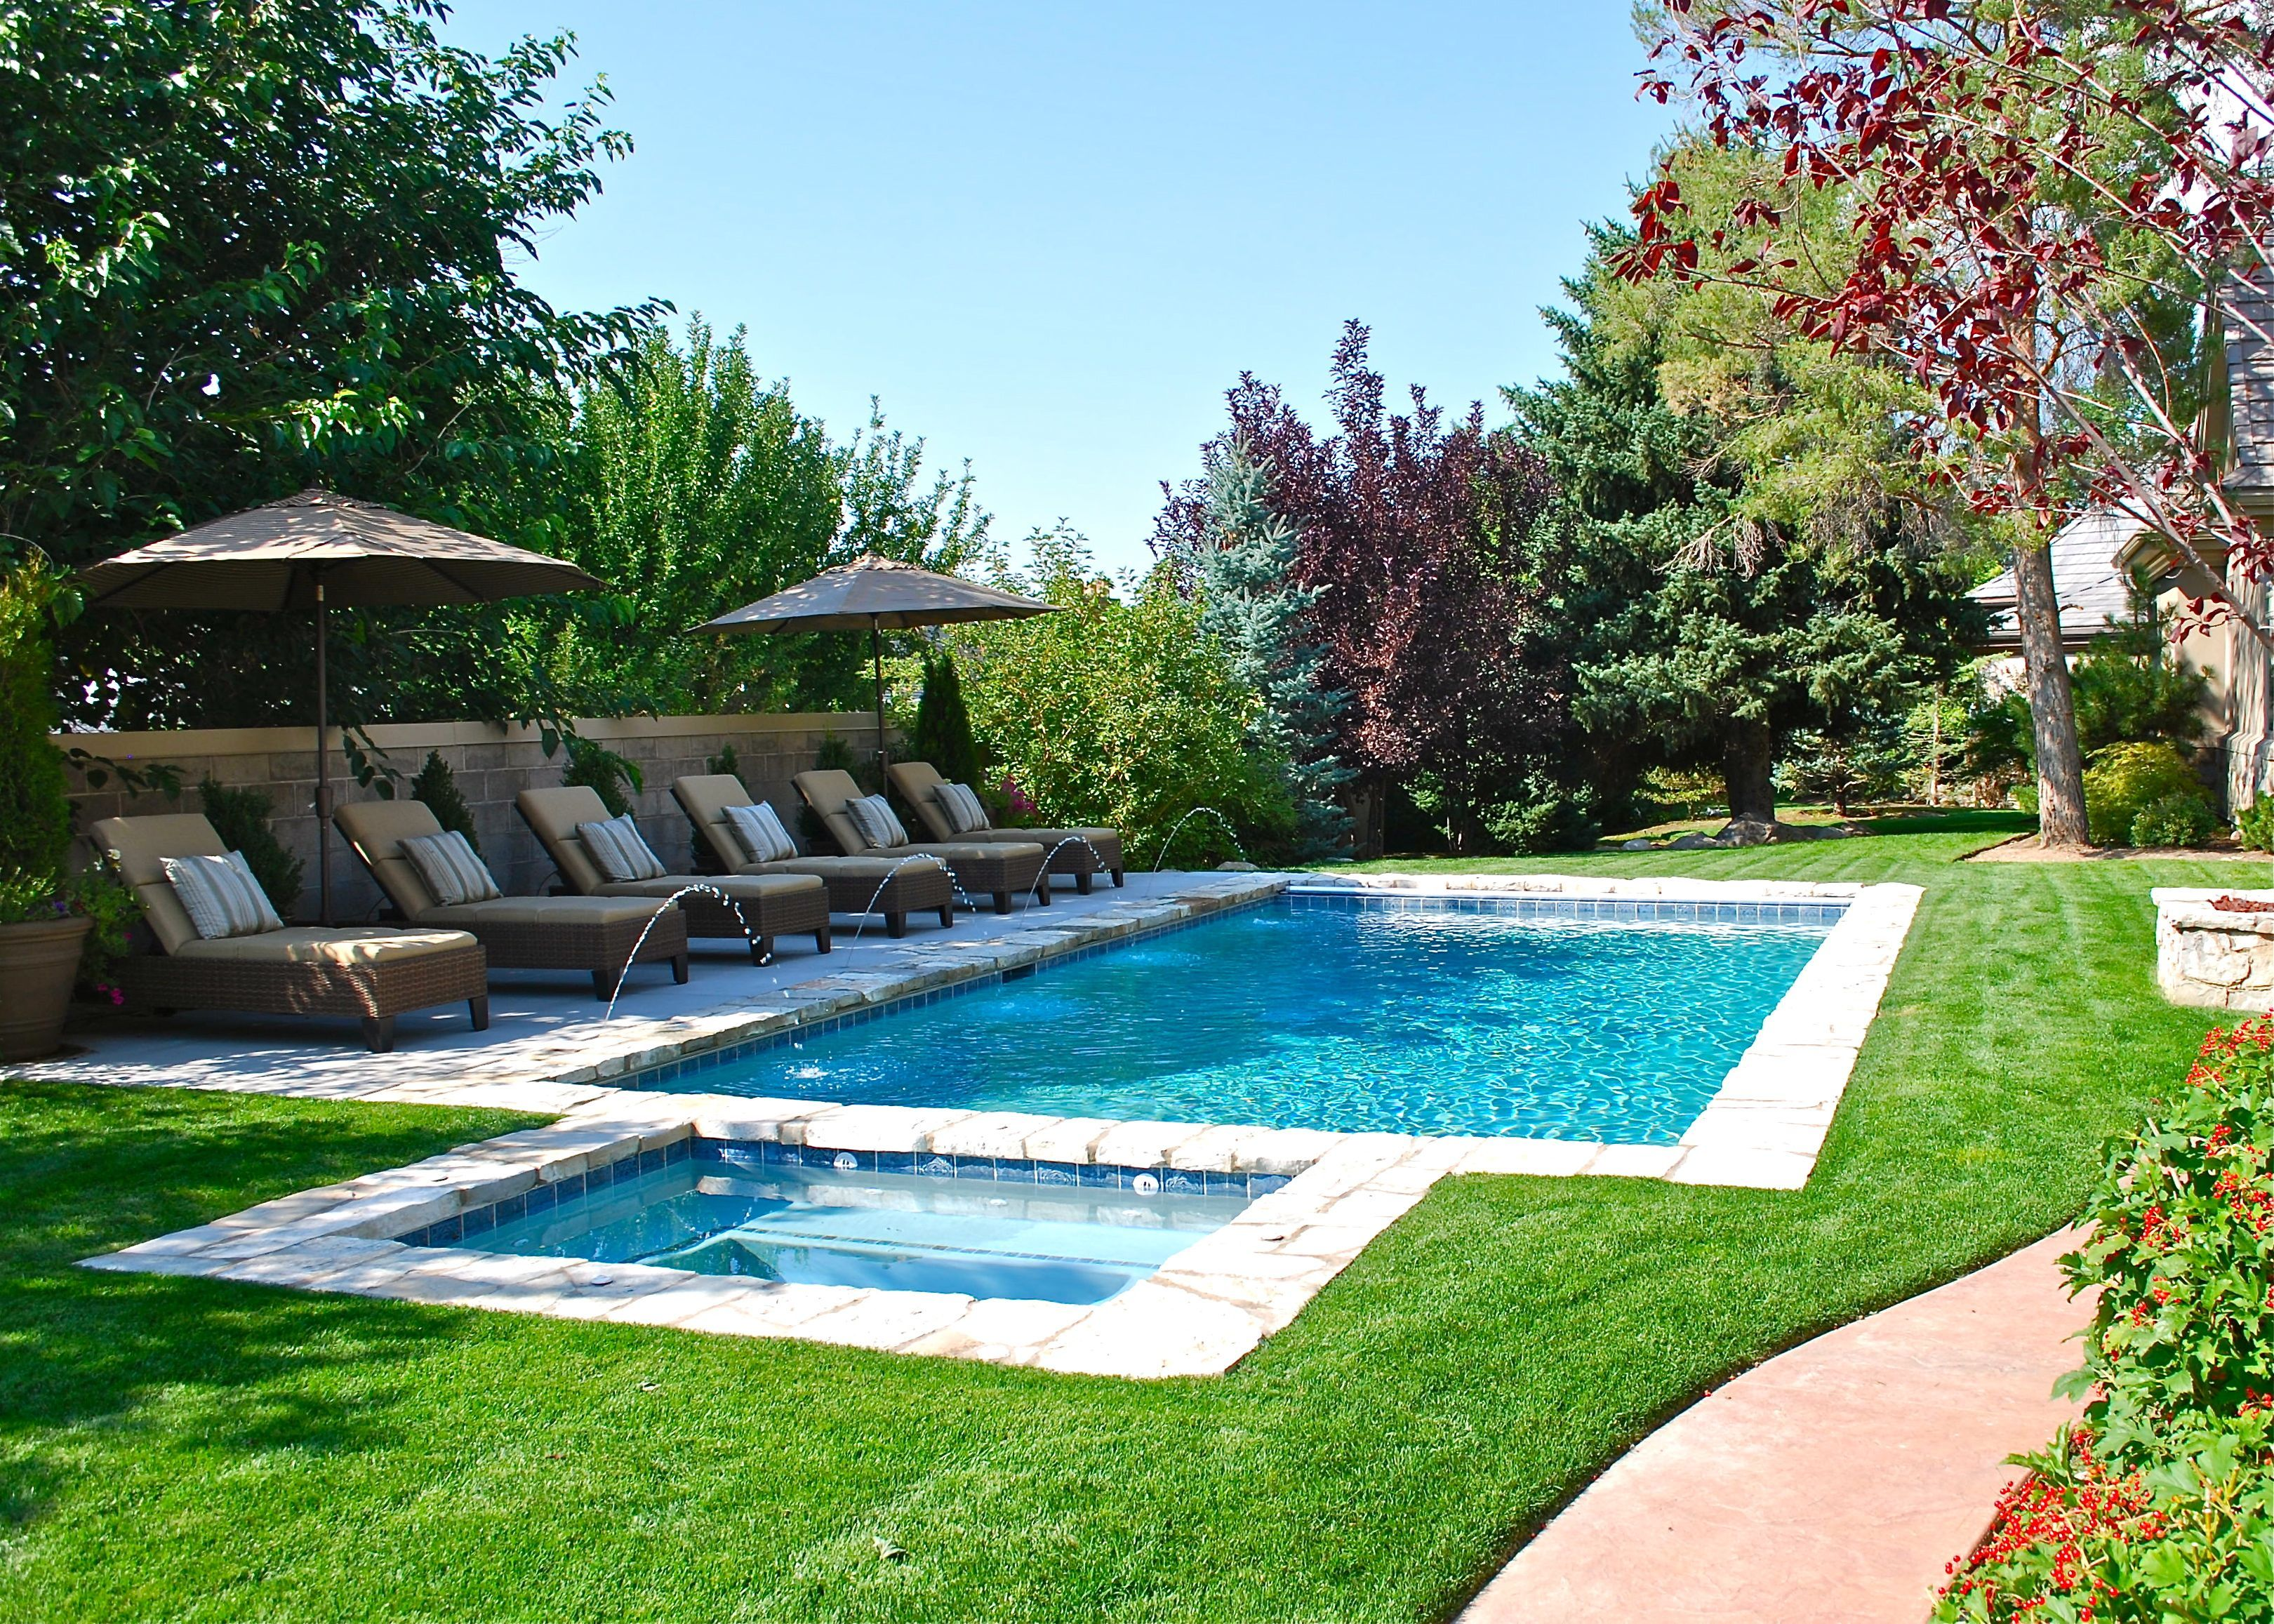 Backyard Swimming Pool With Minimal Decking Deckjets And